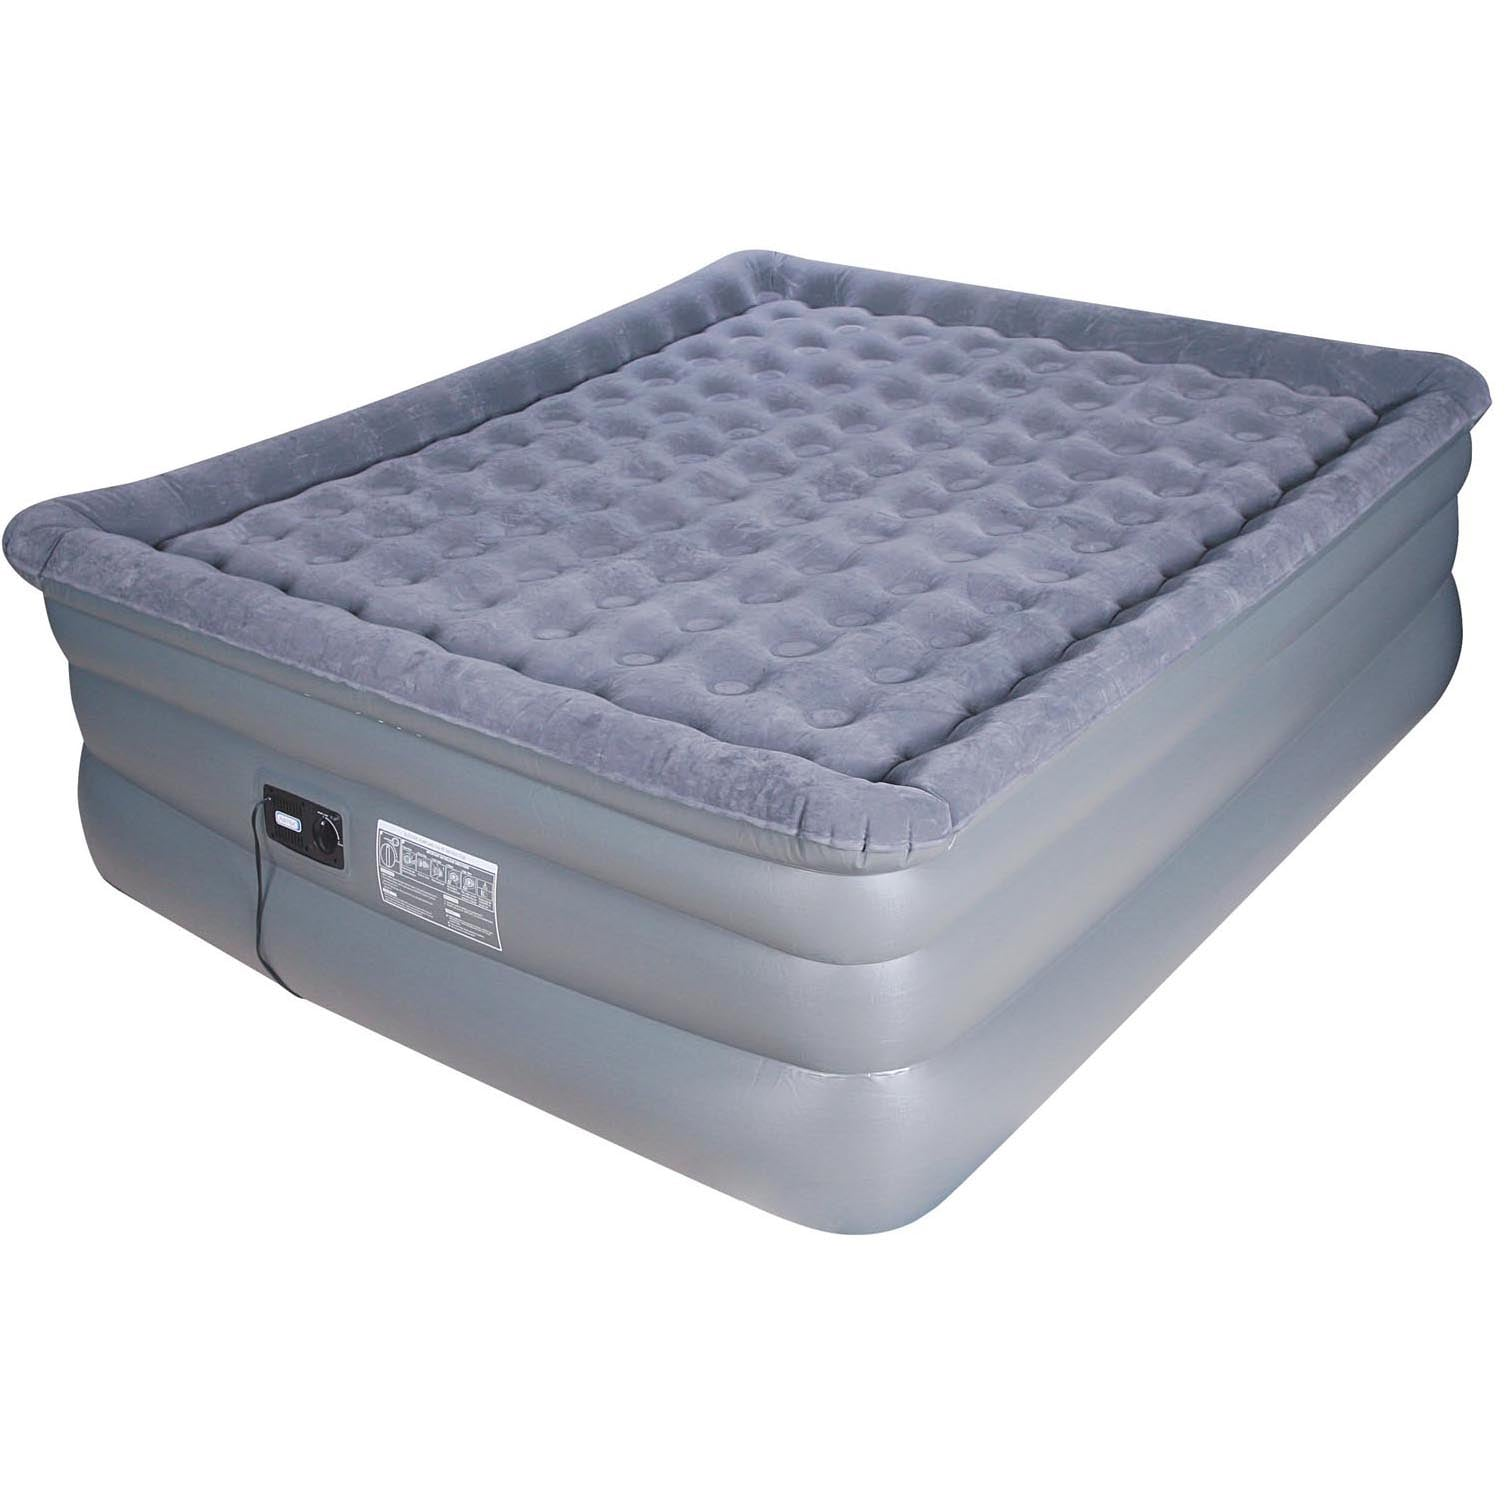 Used Stearns And Foster Mattresses Simmons Beautyrest Katelynn Truenergy Plush Euro Top Mattress | Bed ...